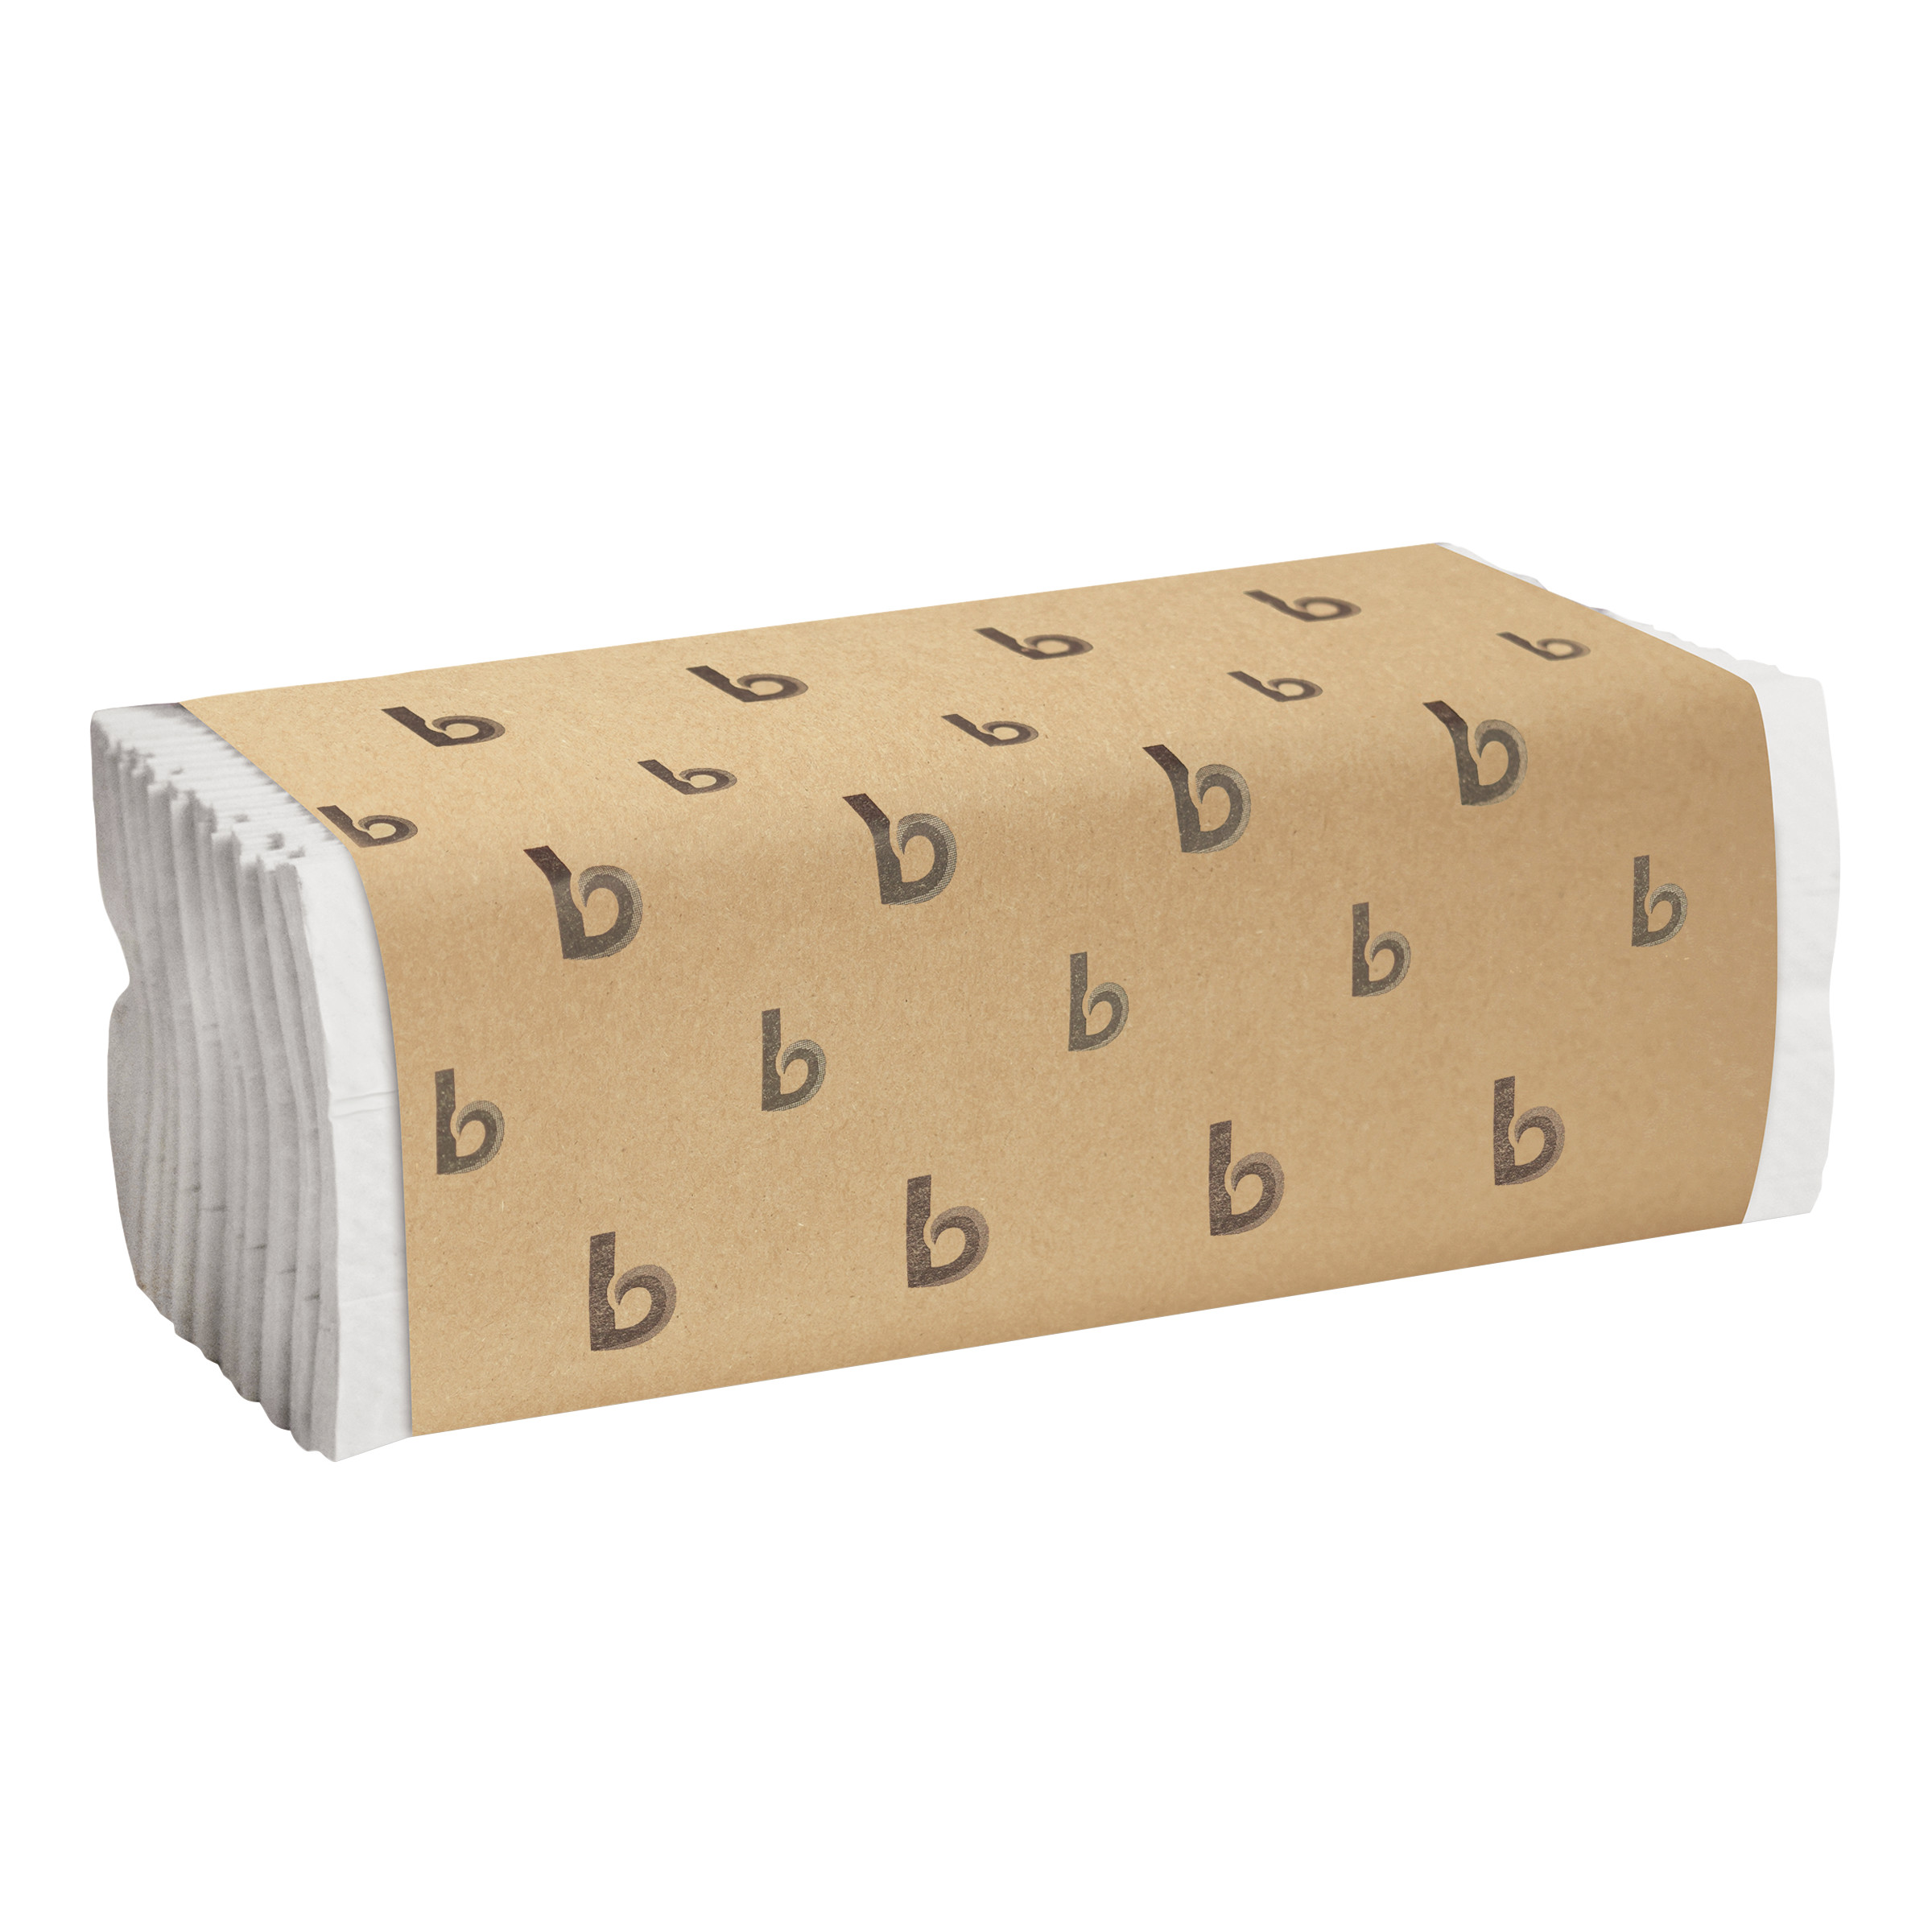 Boardwalk C-Fold Bleached White Paper Towels, 200 sheets, 12 ct